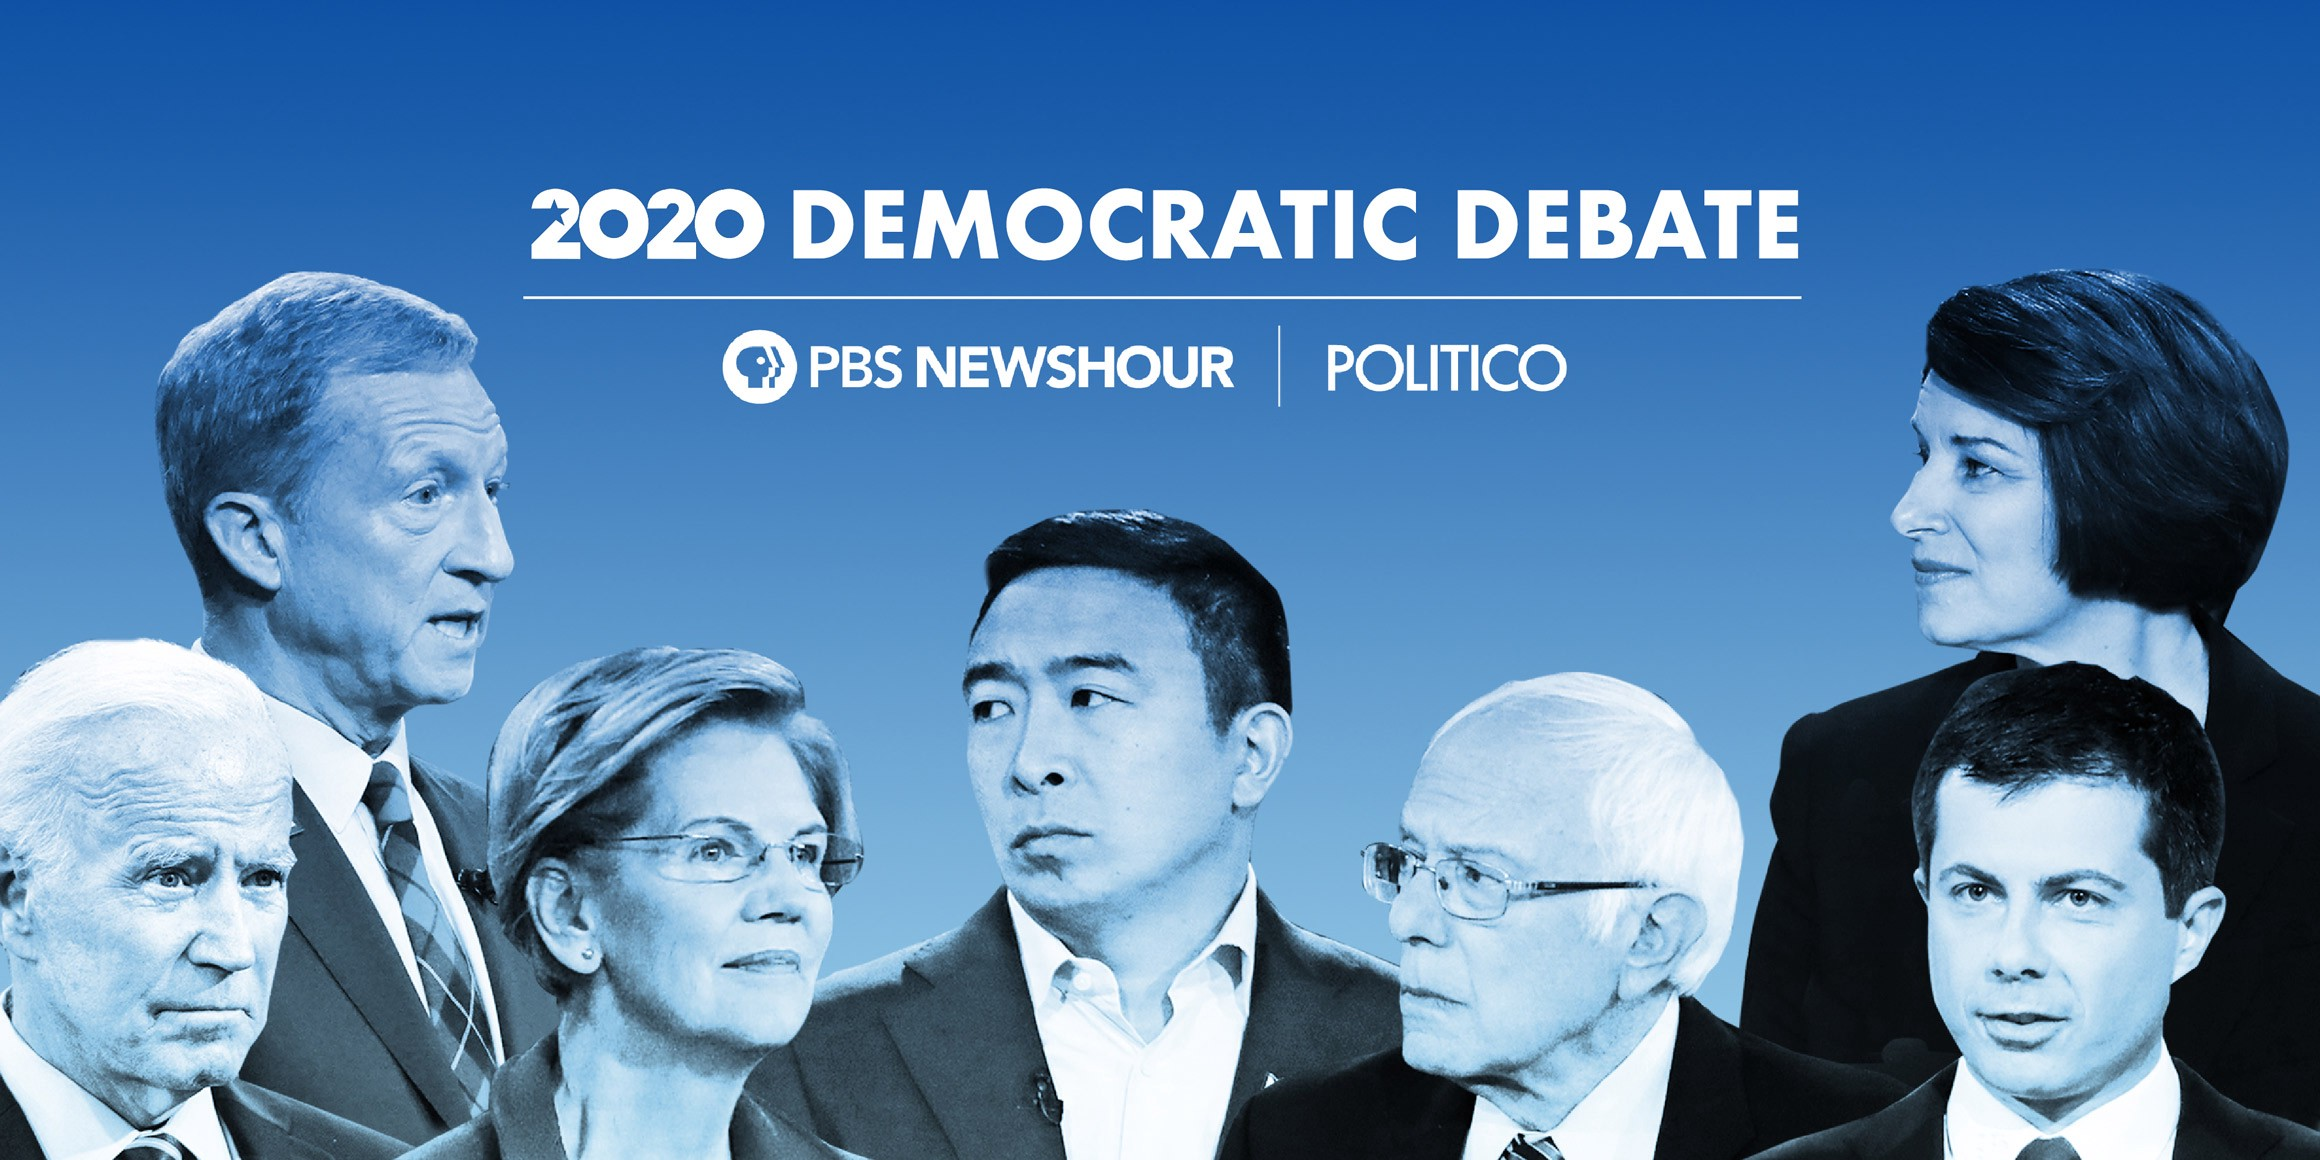 POLITICO and PBS NewsHour will host the last Democratic debate of the year at 8 p.m. ET on Thursday, Dec. 19, at Loyola Marymount University in Los Angeles.